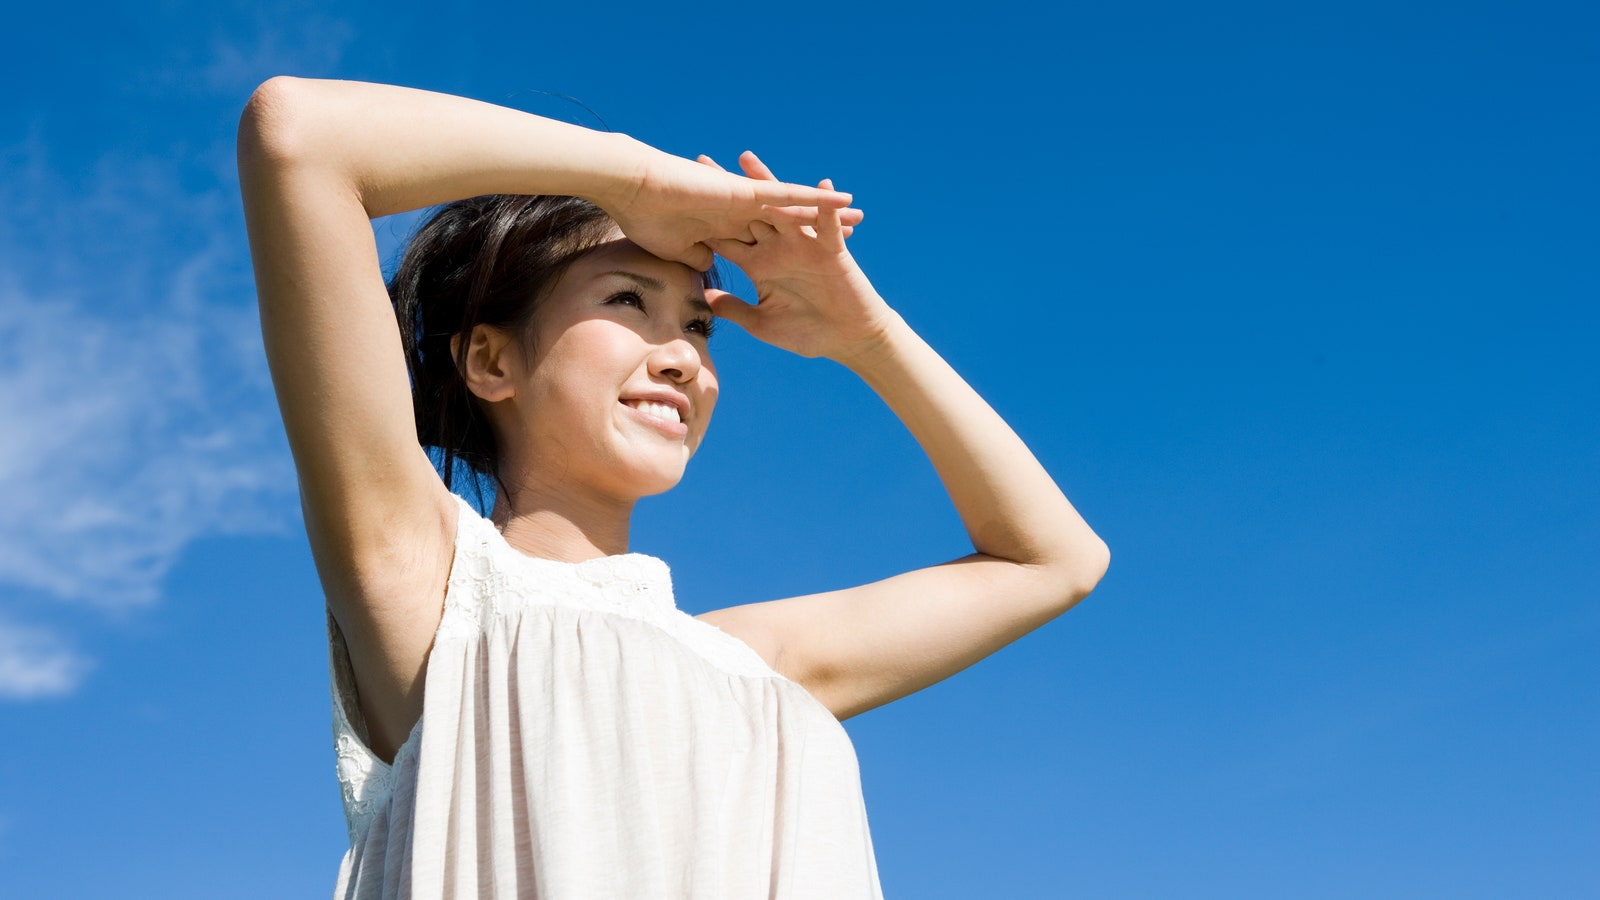 A woman with raised arms shielding her eyes from the sun against a clear blue sky